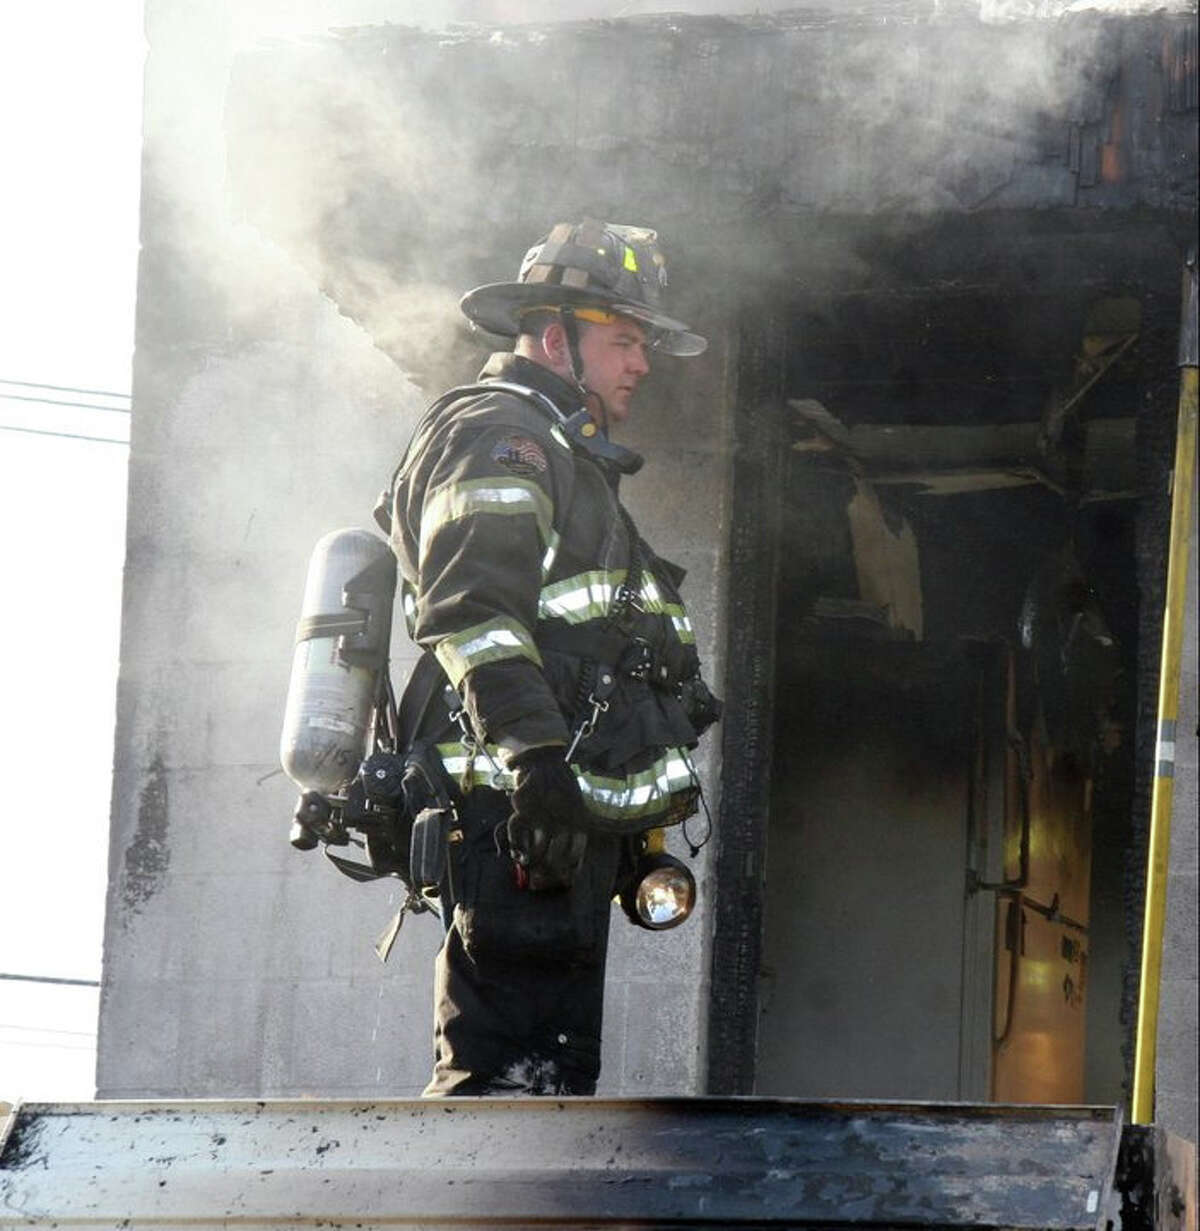 A Fairfield firefighter battles a blaze that broke out on Sunday, June 19, 2011 at a second-floor apartment upstairs from the Bejing chinese restaurant in Fairfield, Conn.